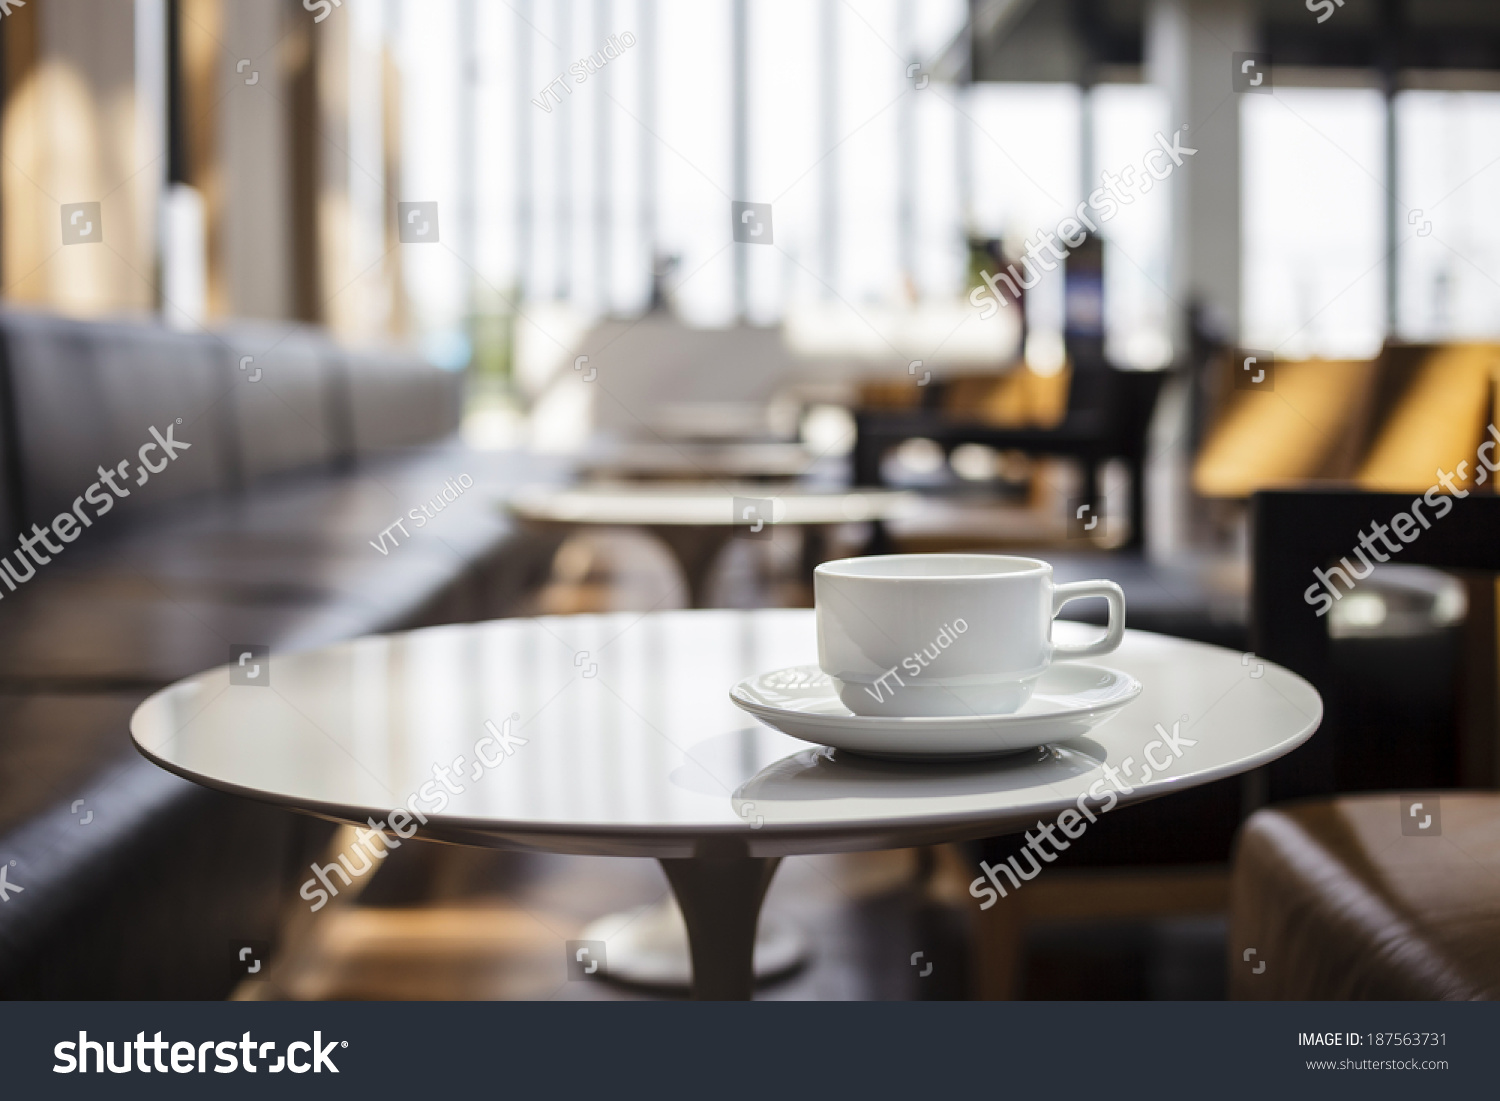 Coffee shop cafe interior table stock photo 187563731 for Cafe coffee table